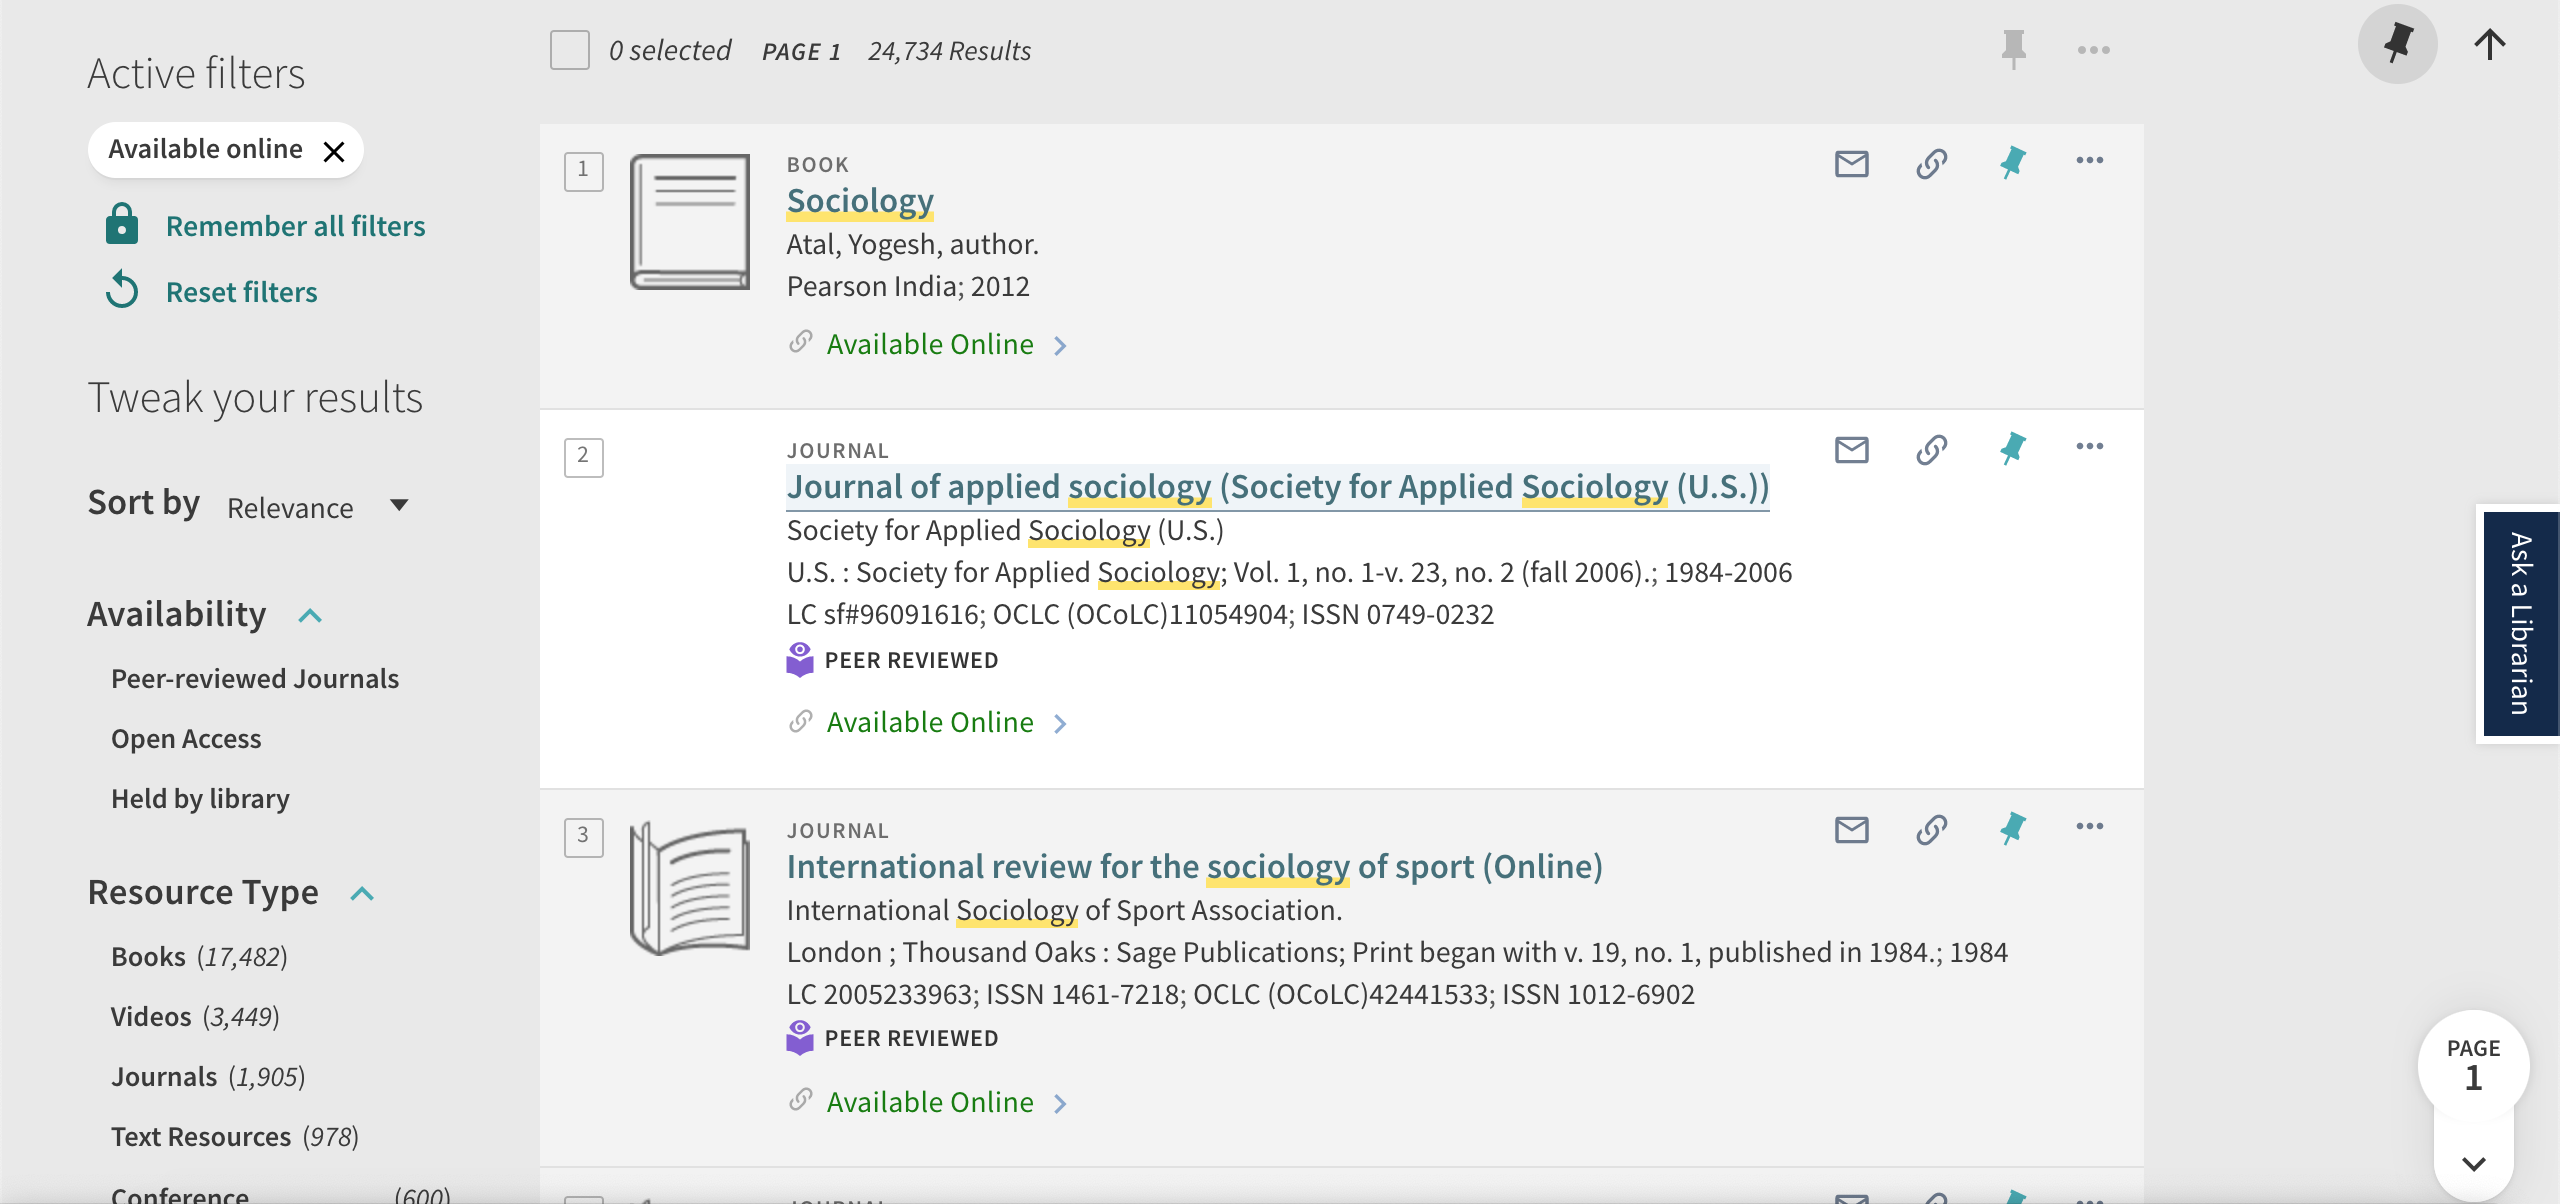 Image contains a filtered library search result for sociology that shows all online resources